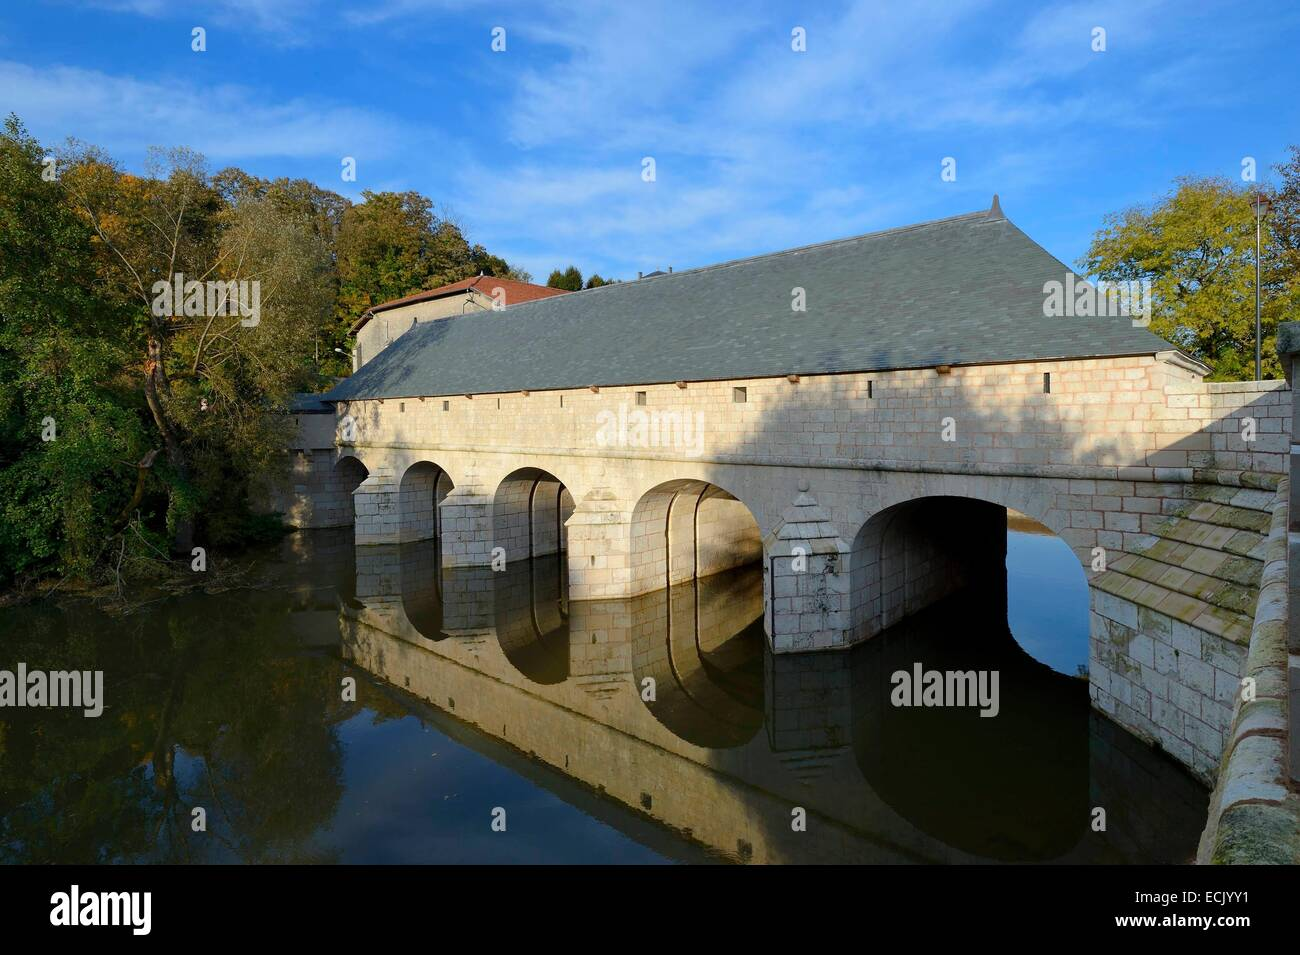 France, Meuse, Verdun, the Saint Amand lock and sluice bridge (1685) over the Meuse river, inspired by a Vauban - Stock Image